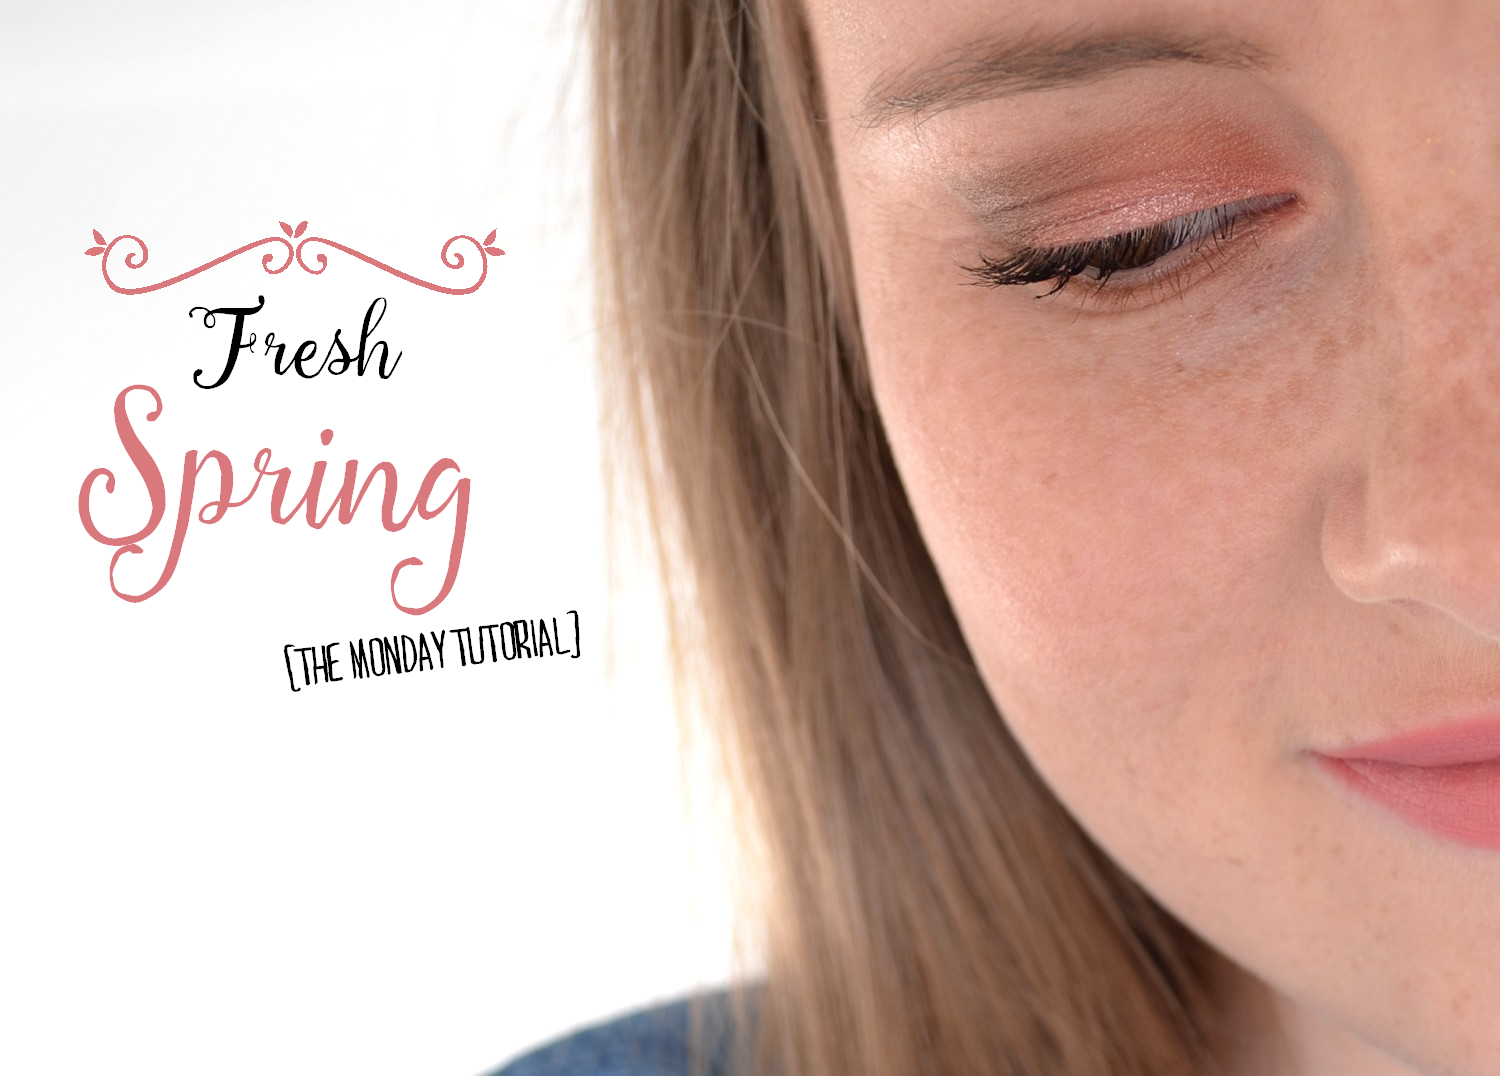 http://www.dreamingsmoothly.com/2016/03/monday-tutorial-fresh-spring.html